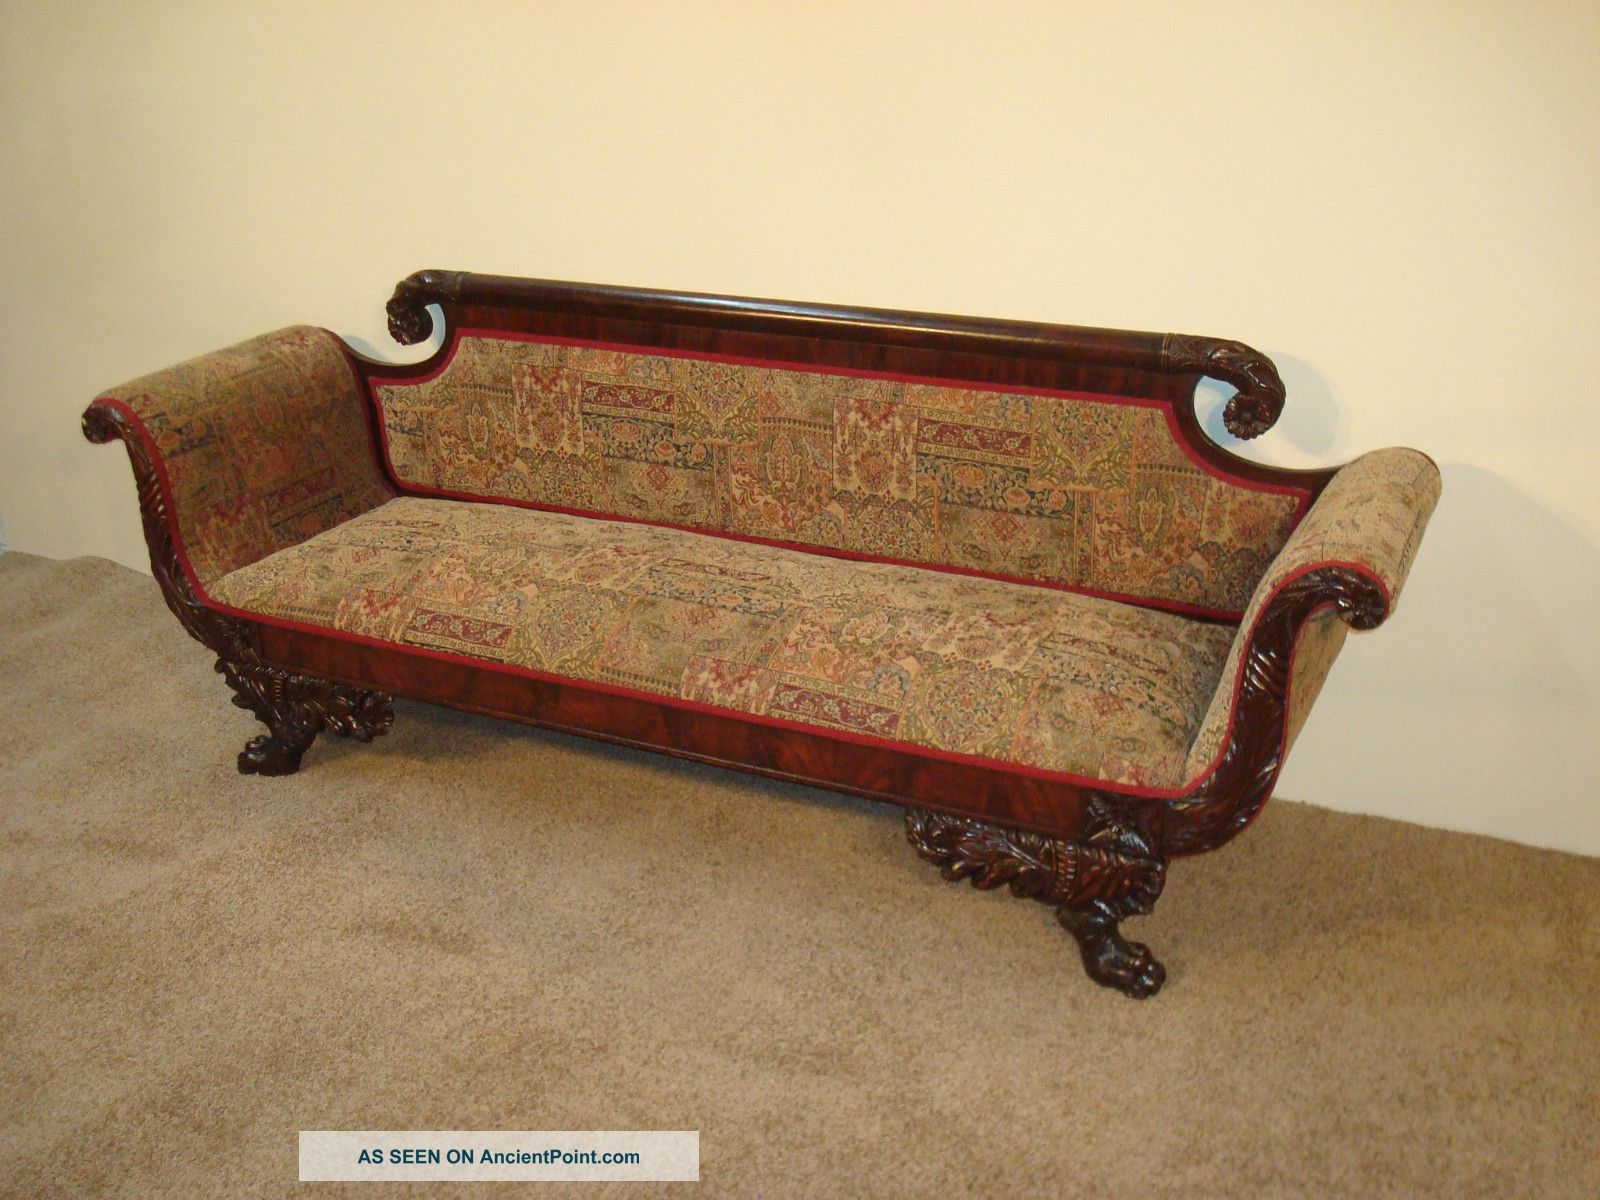 Antique Empire Eagle Wing Carved Mahogany Sofa Circa.  1810 - 20 New York 1800-1899 photo